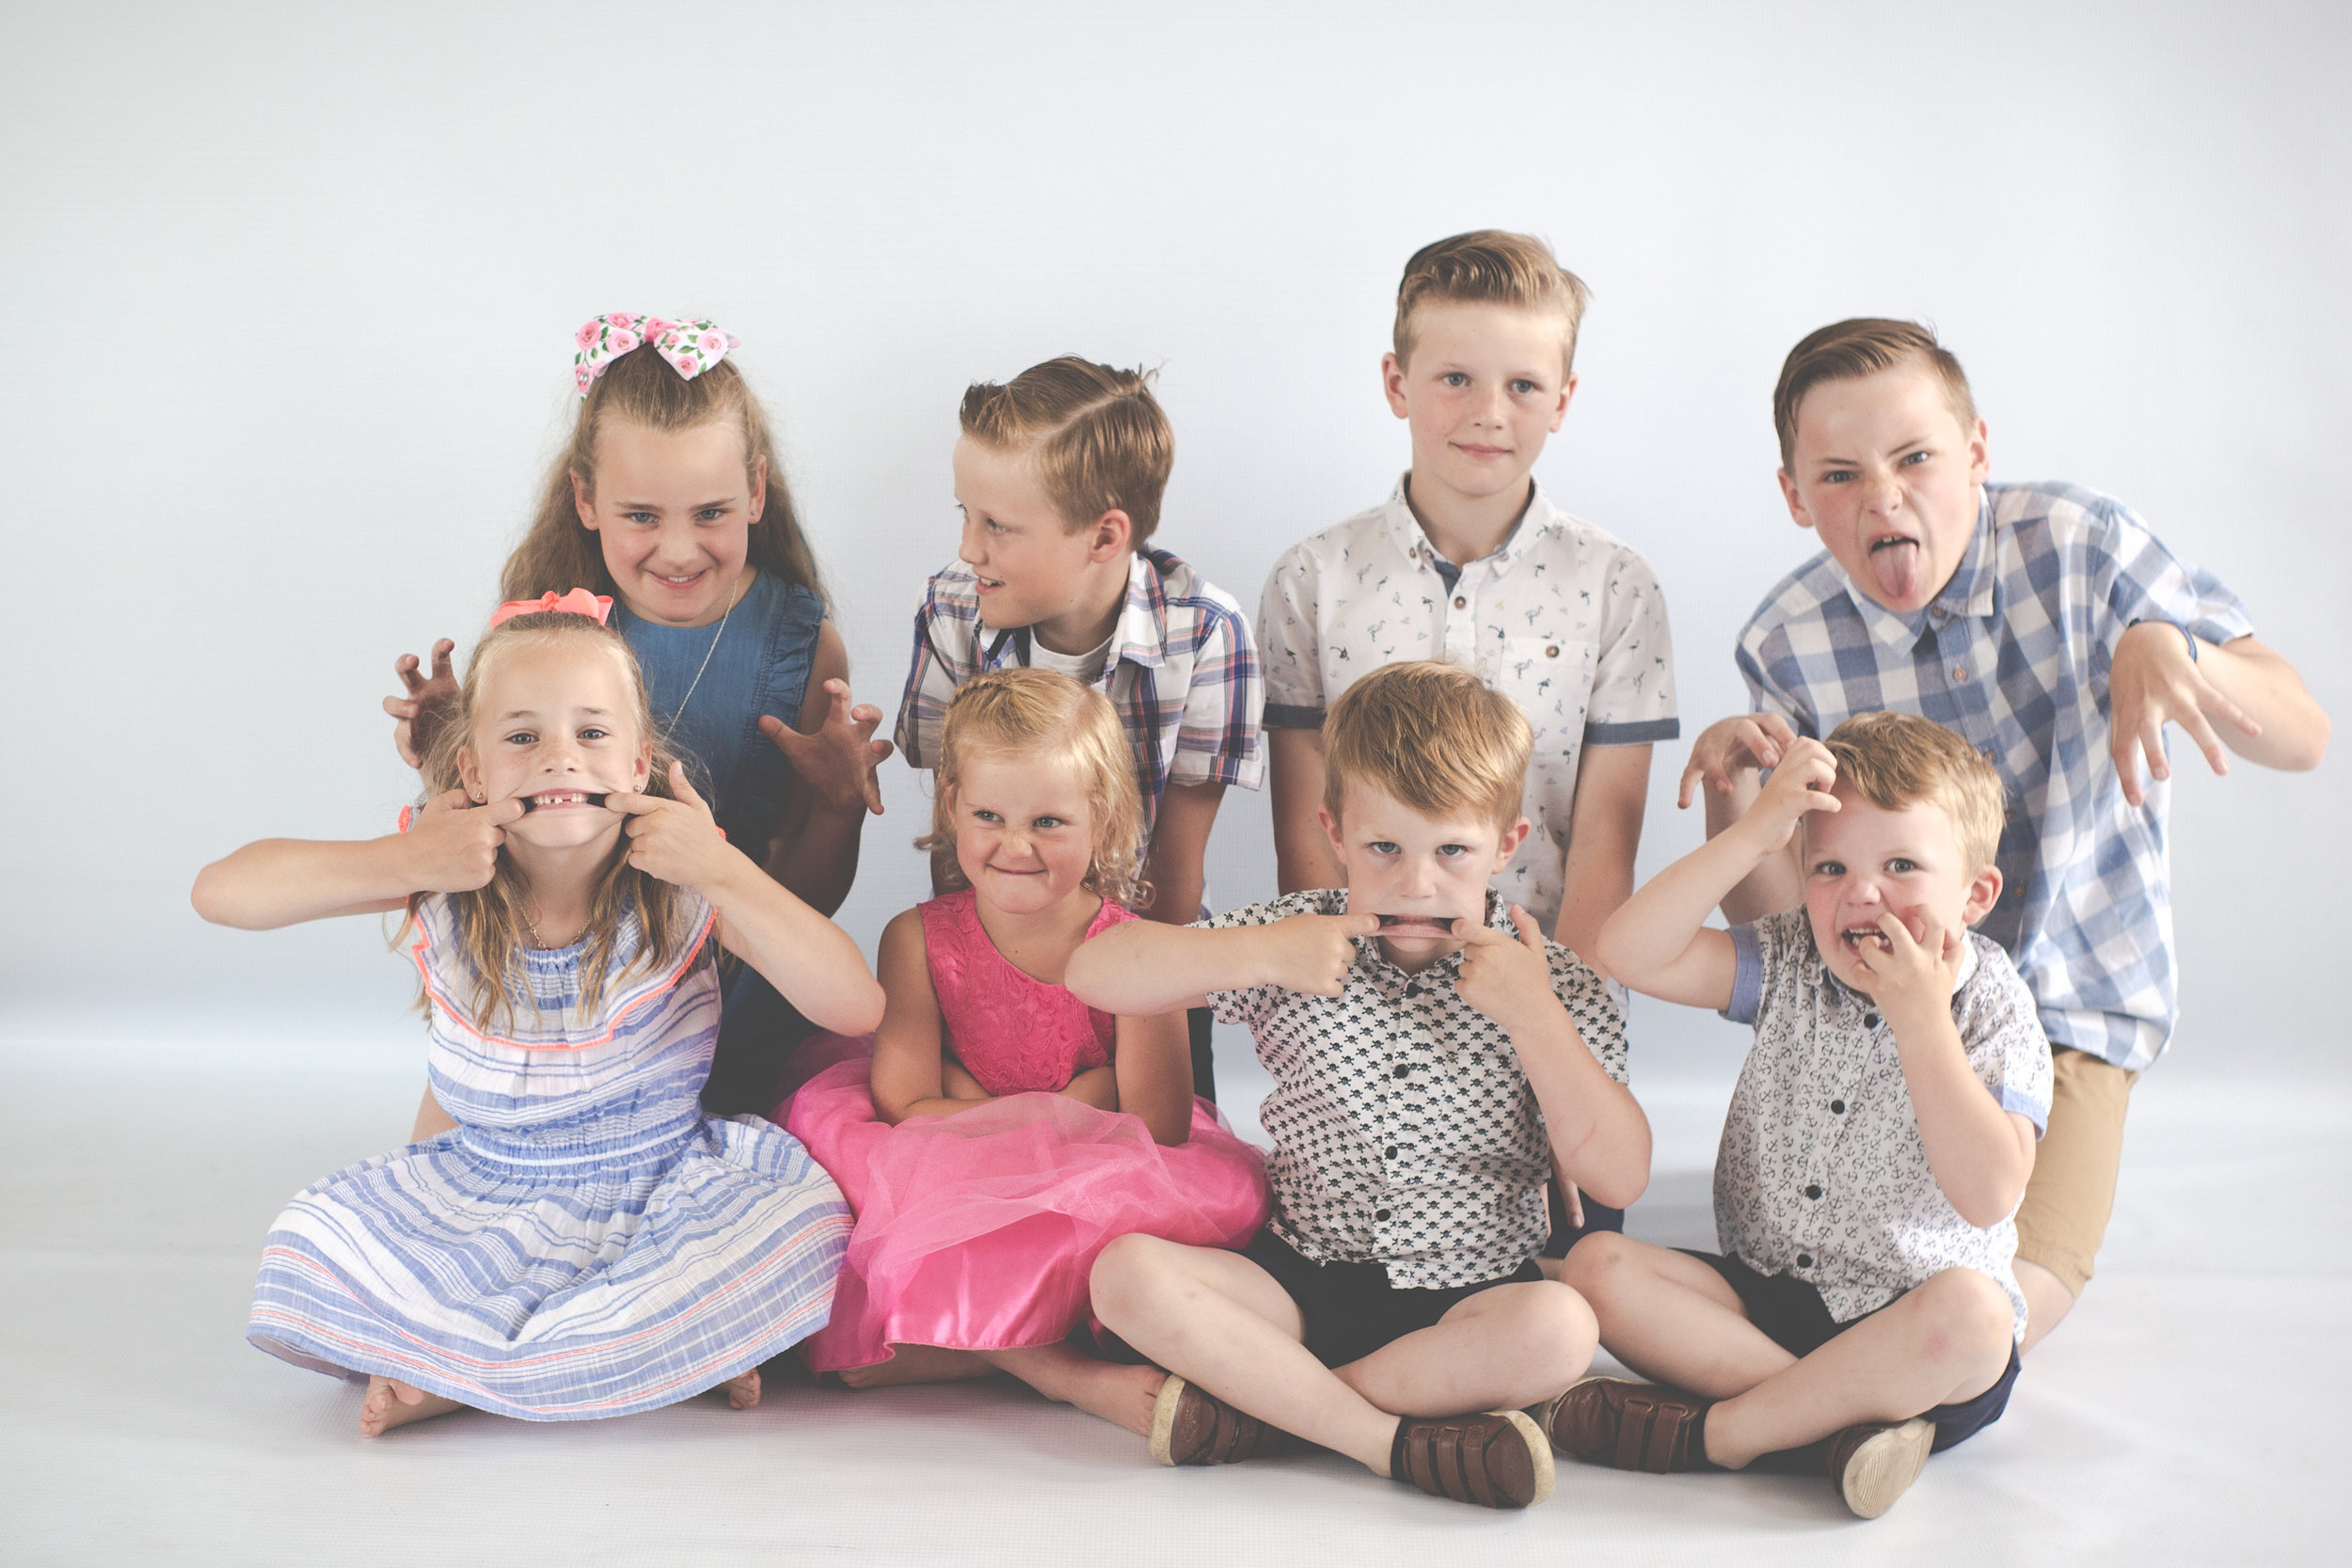 large_family_photographer_skipton_003.jpg